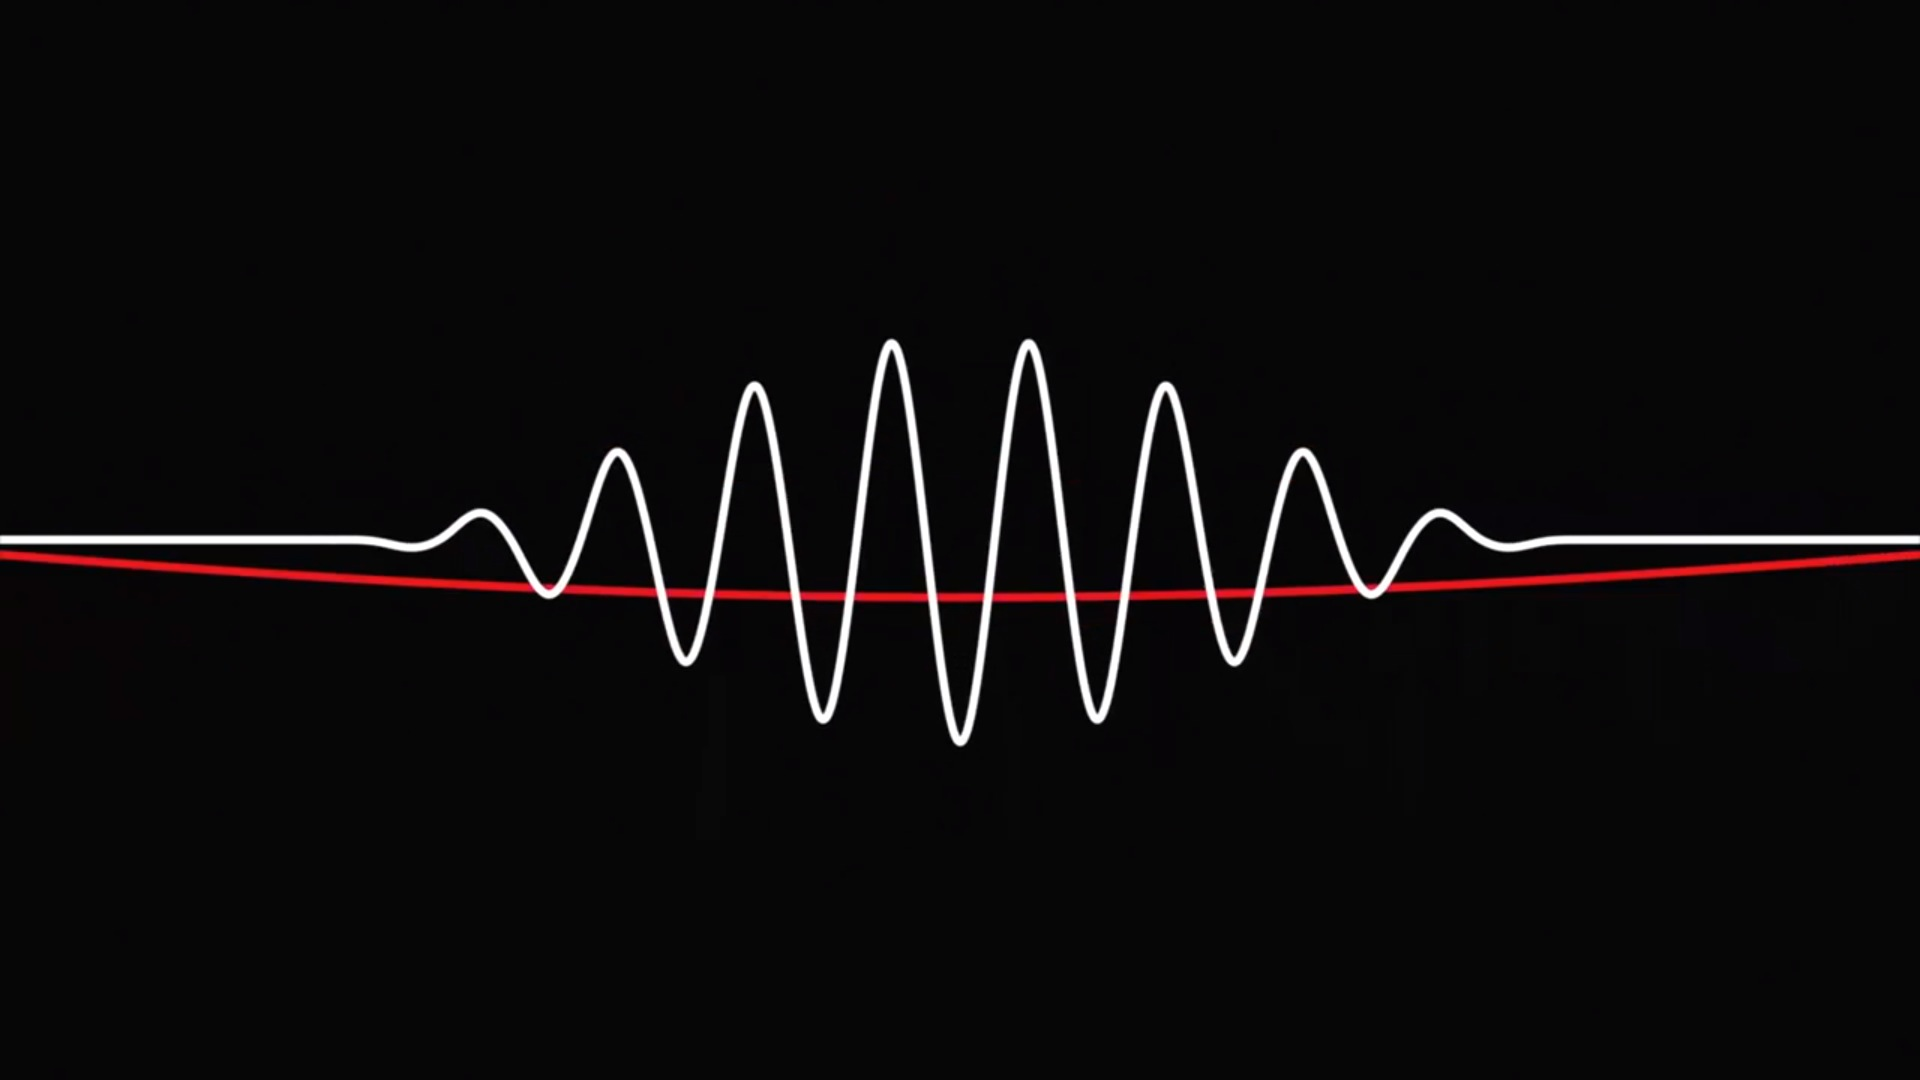 arctic monkeys desktop wallpapers - photo #8